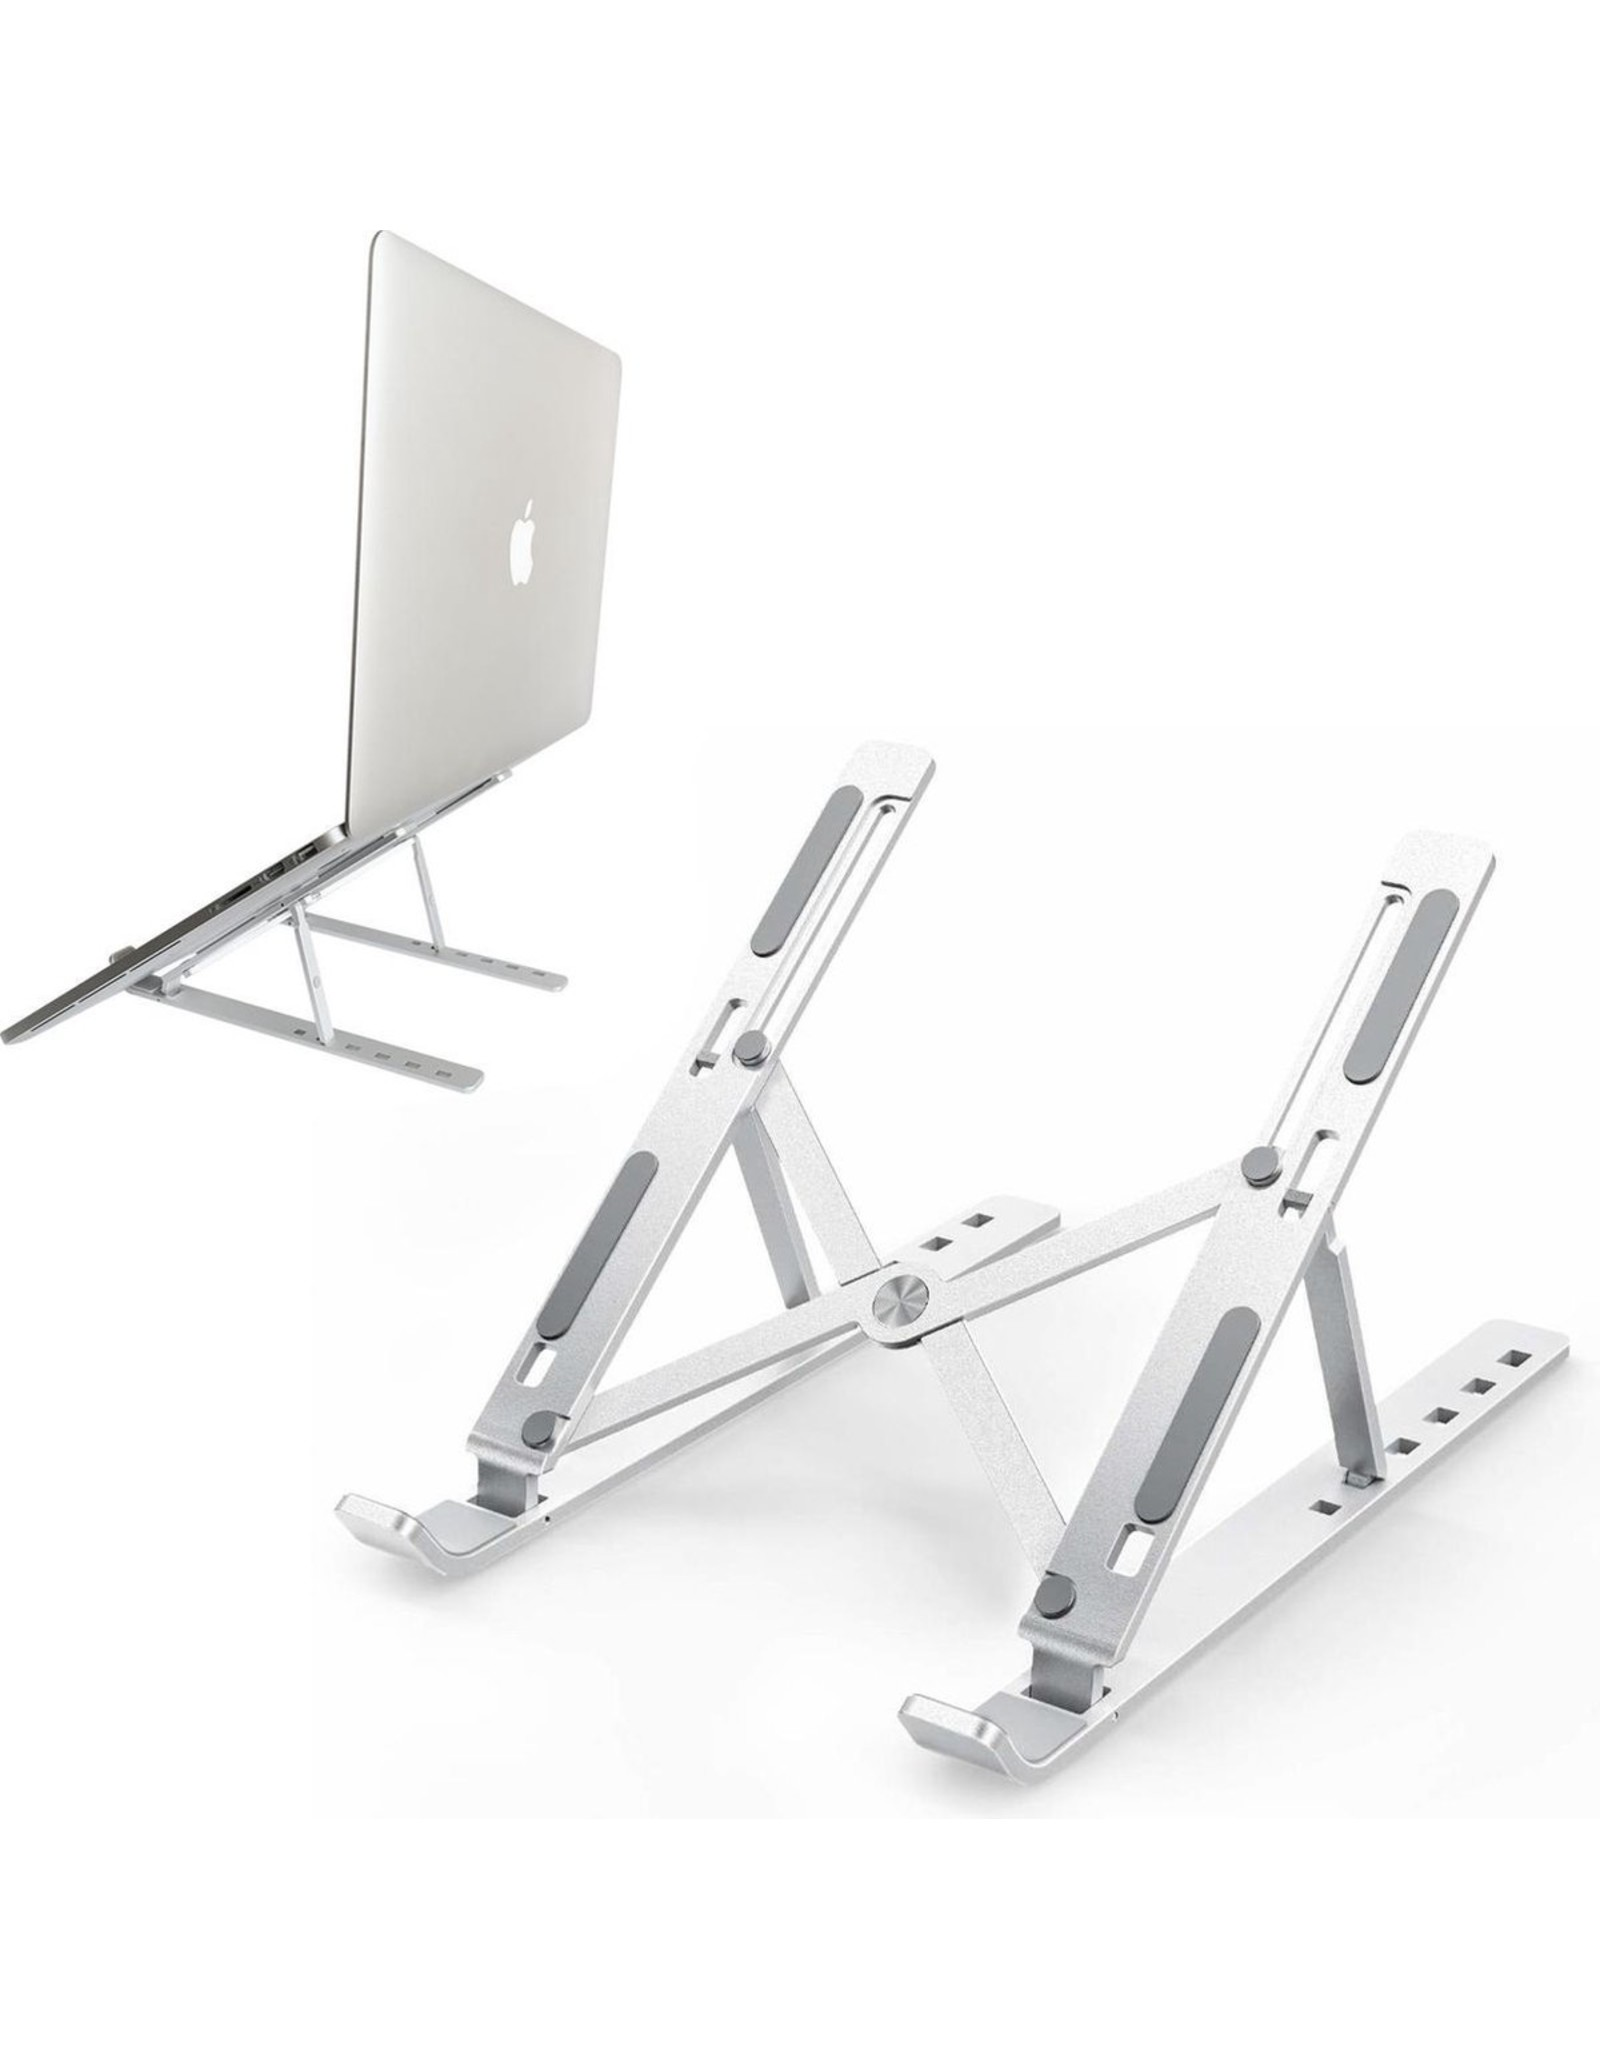 Small laptop and tablet stand